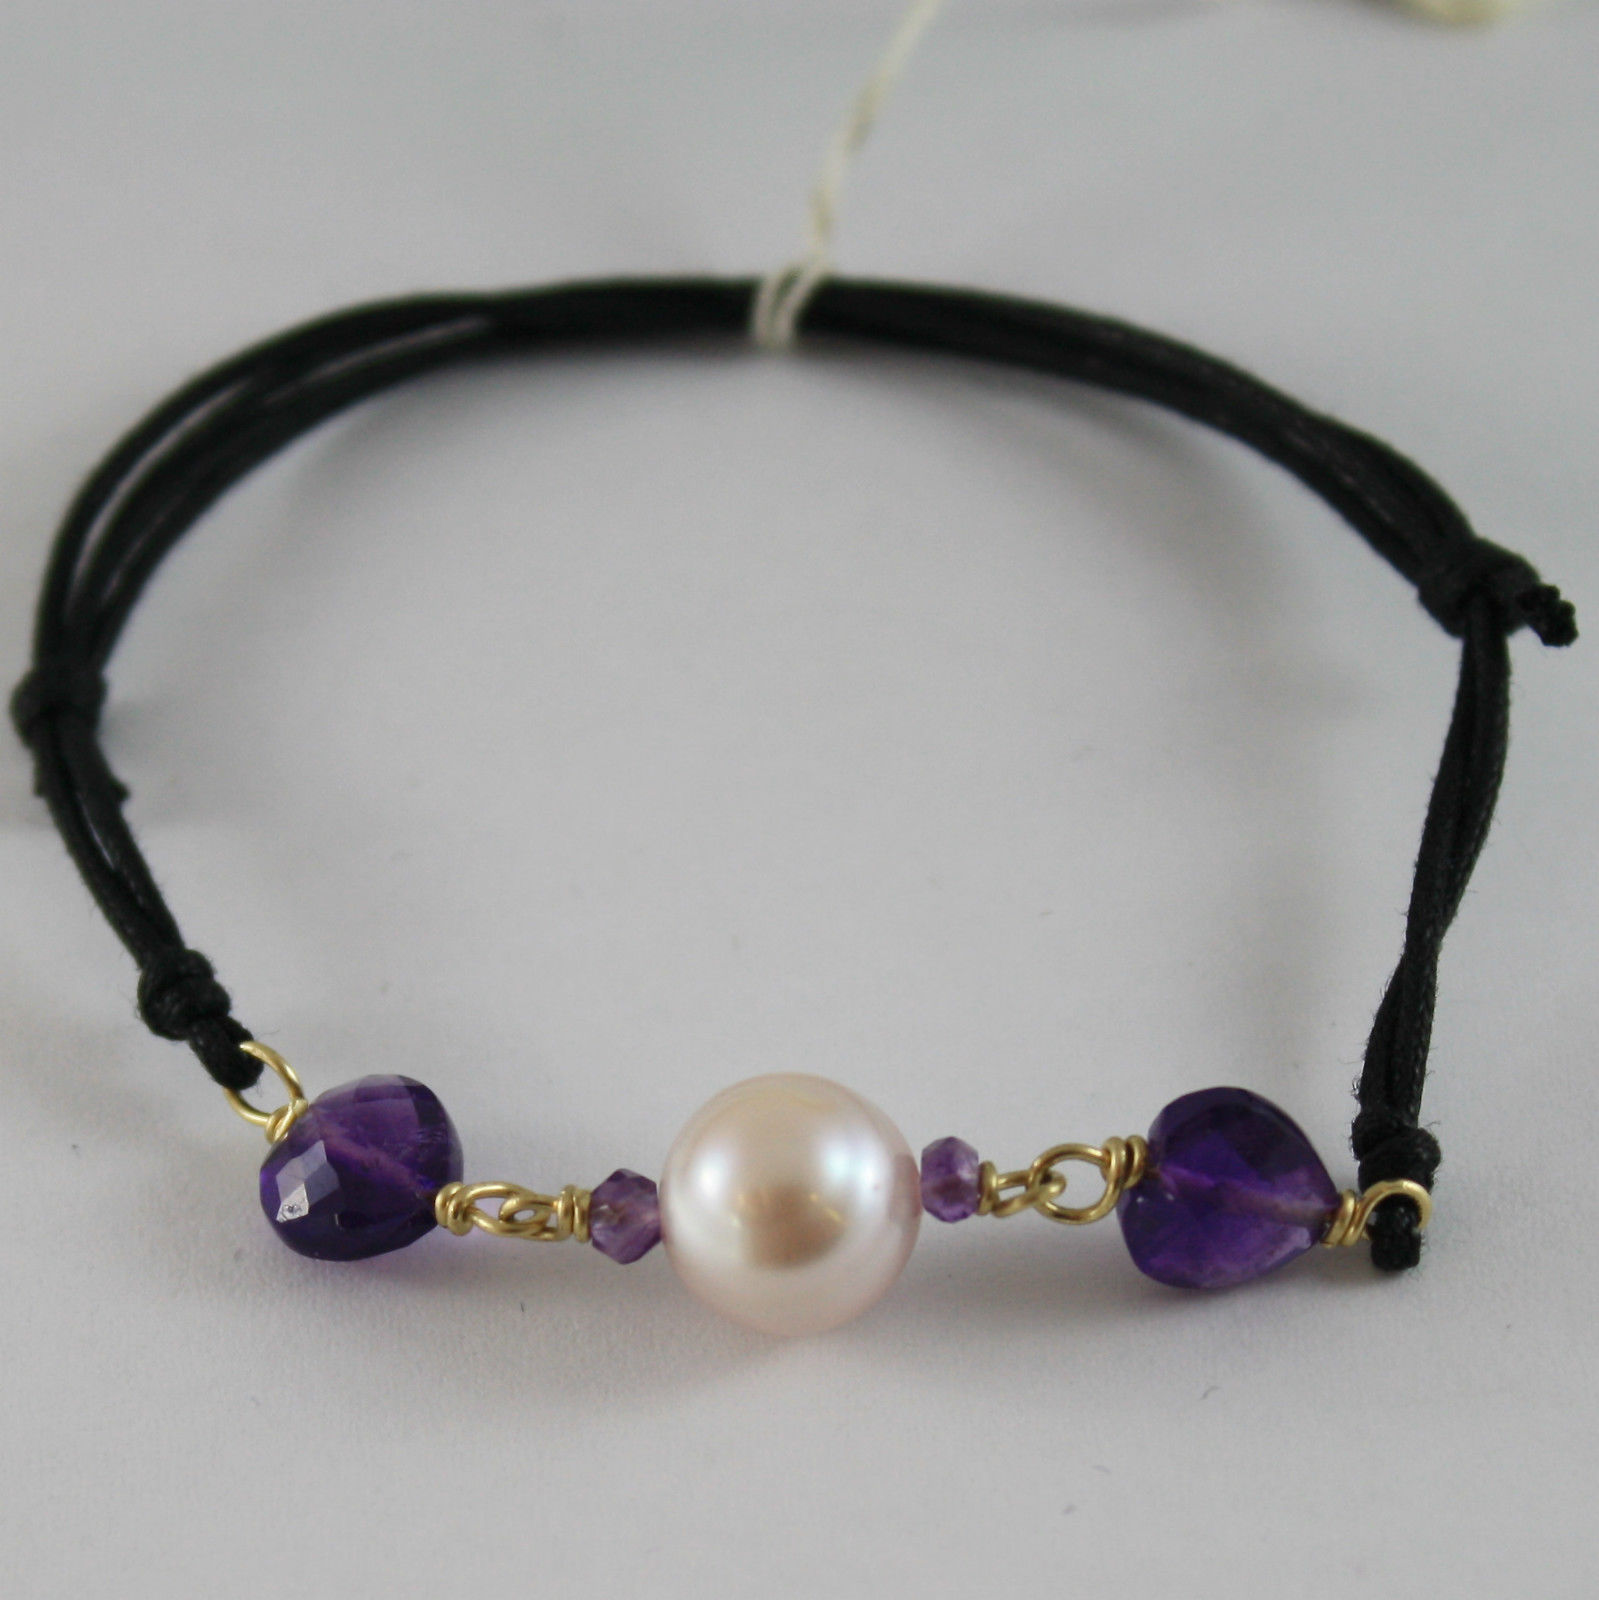 SOLID 18K YELLOW GOLD BRACELET HEART AMETHYST AND PURPLE PEARLS, MADE IN ITALY